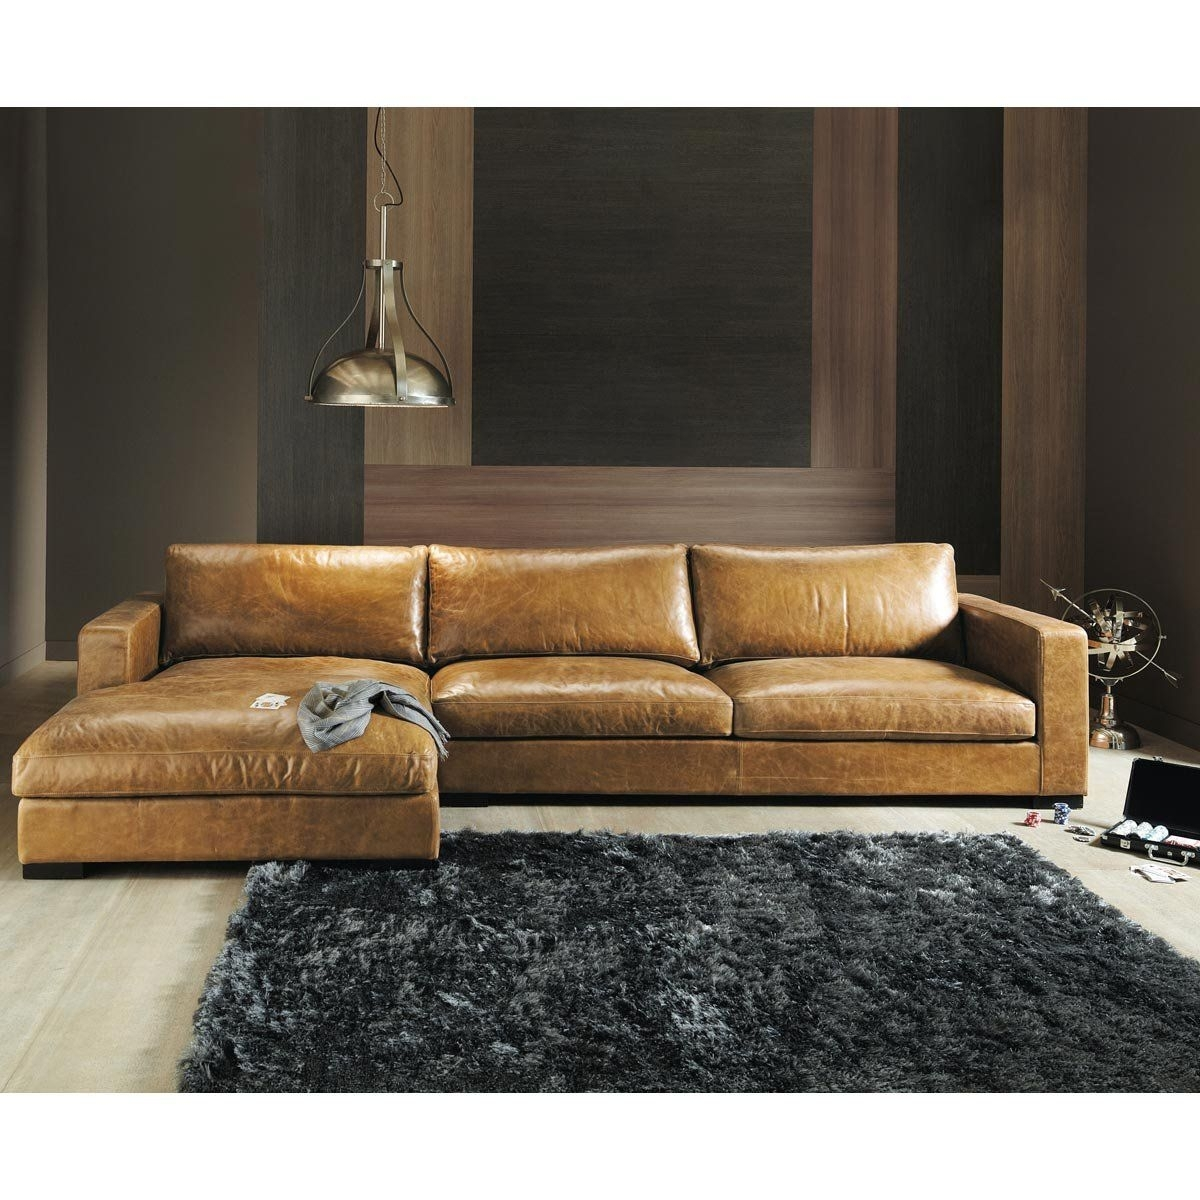 5-Seater Vintage Leather Corner Sofa, Camel | Sofa Seats, Leather with regard to Camel Colored Sectional Sofas